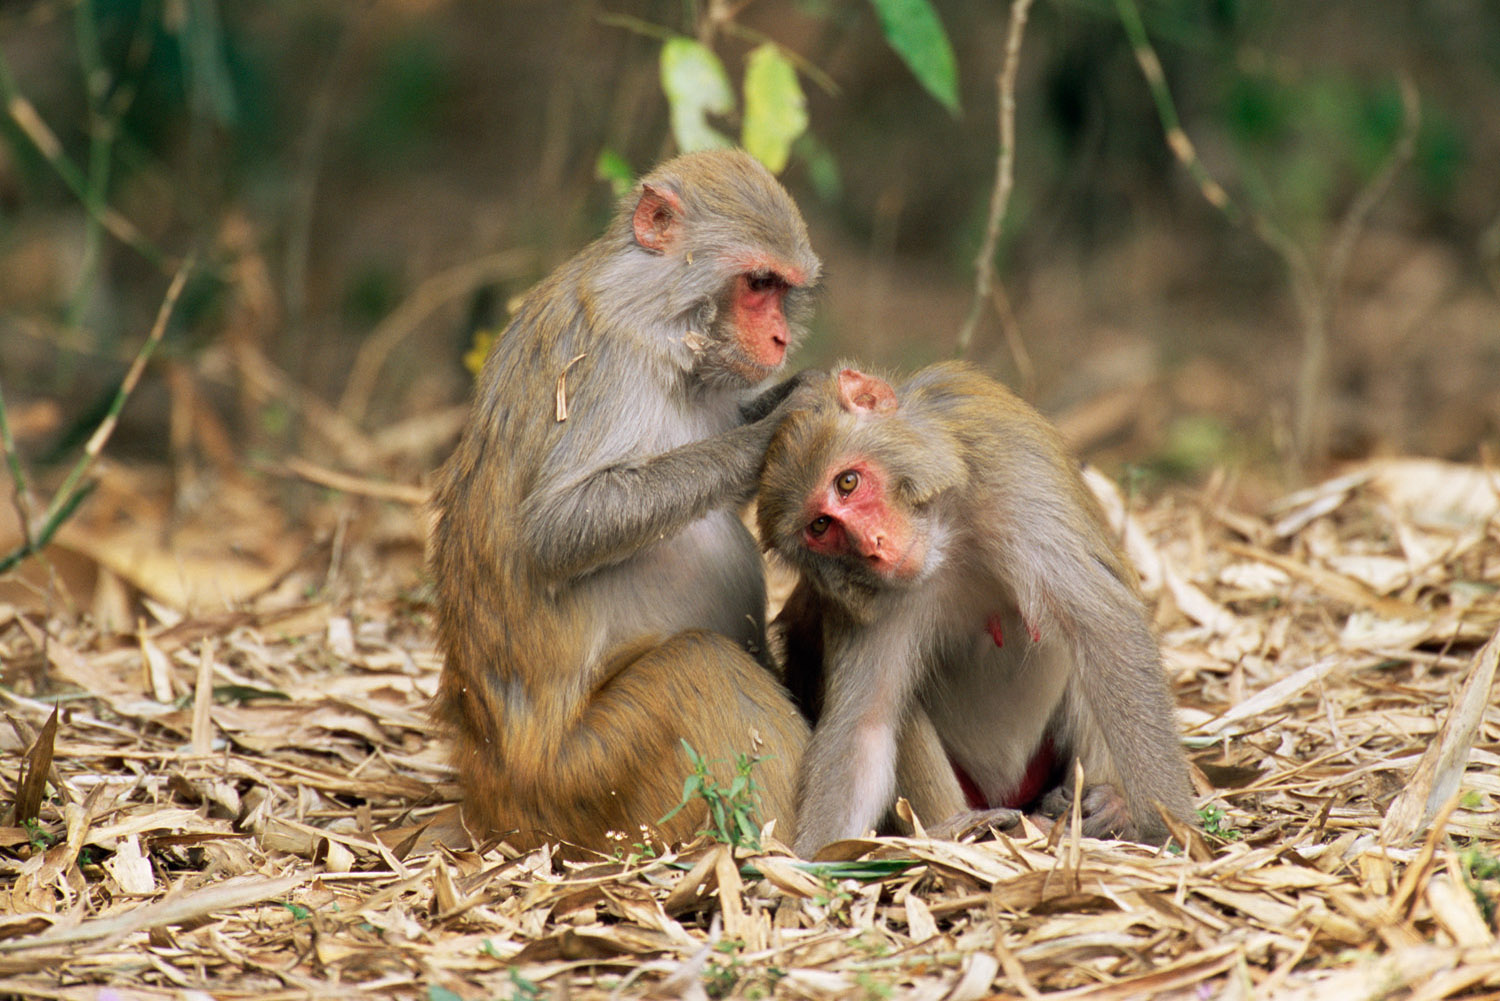 Rhesus macaques grooming, Kaziranga National Park, Assam, India